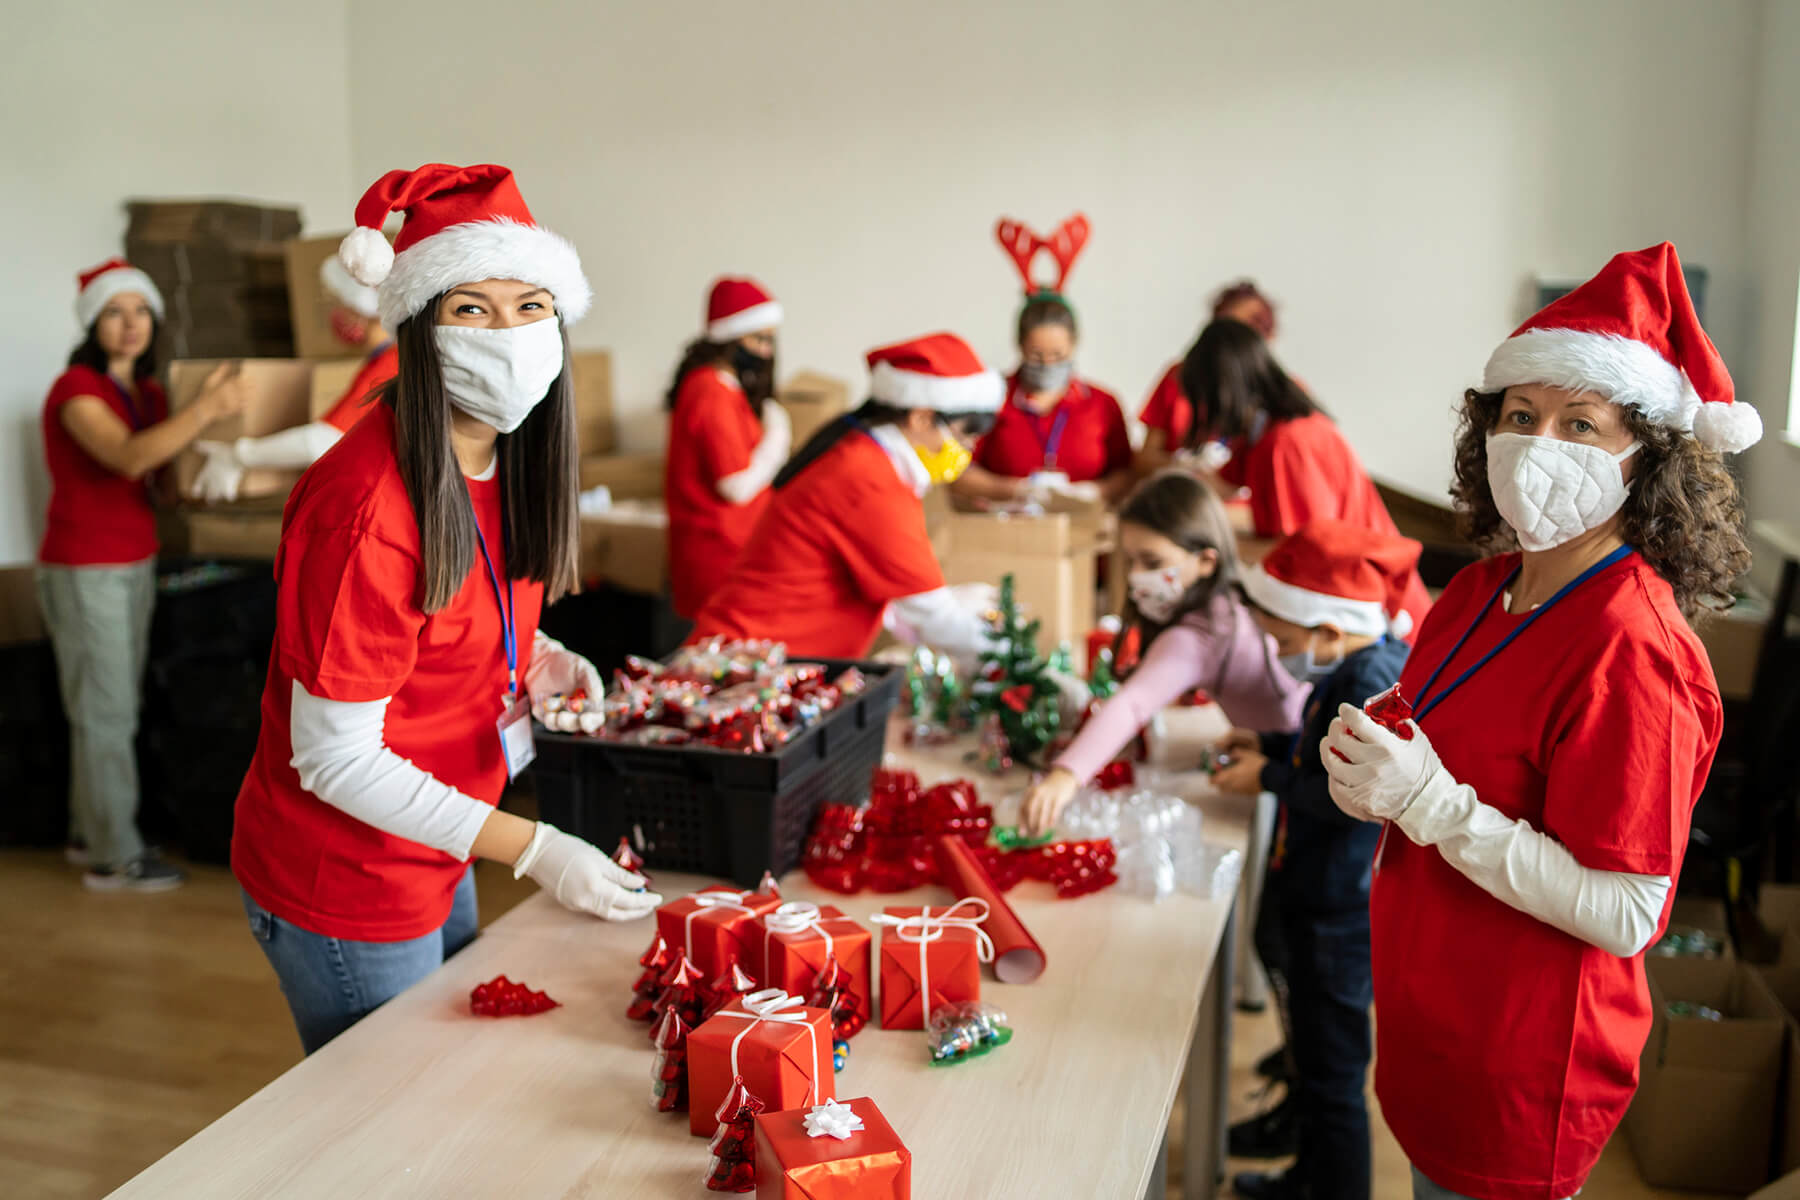 Volunteers with masks wrapping holiday gift donations